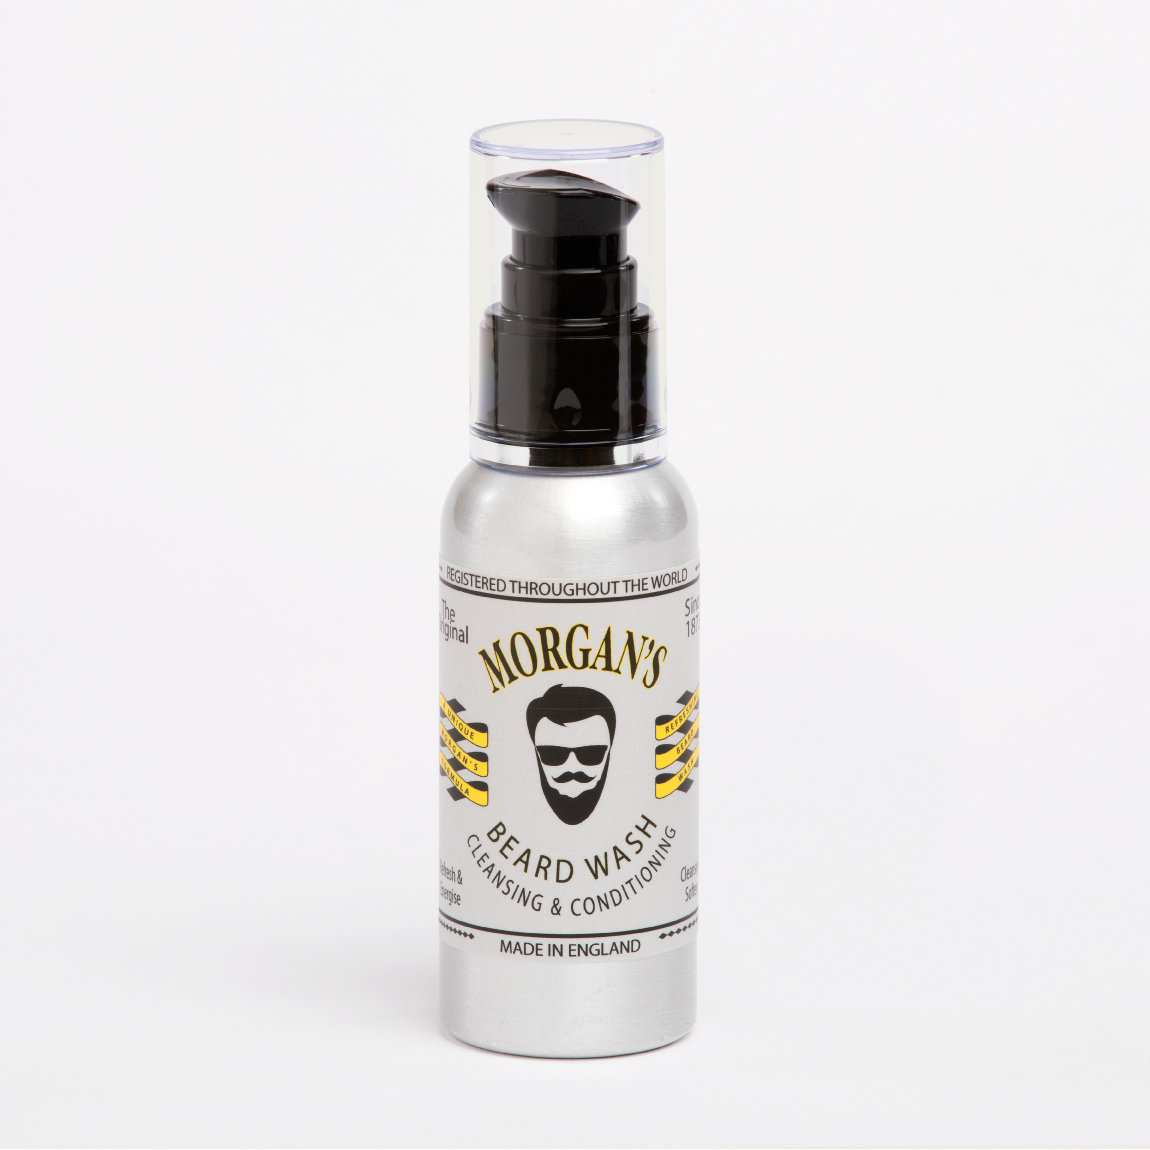 MORGAN'S Beard Wash / Шампунь для бороды 100 мл